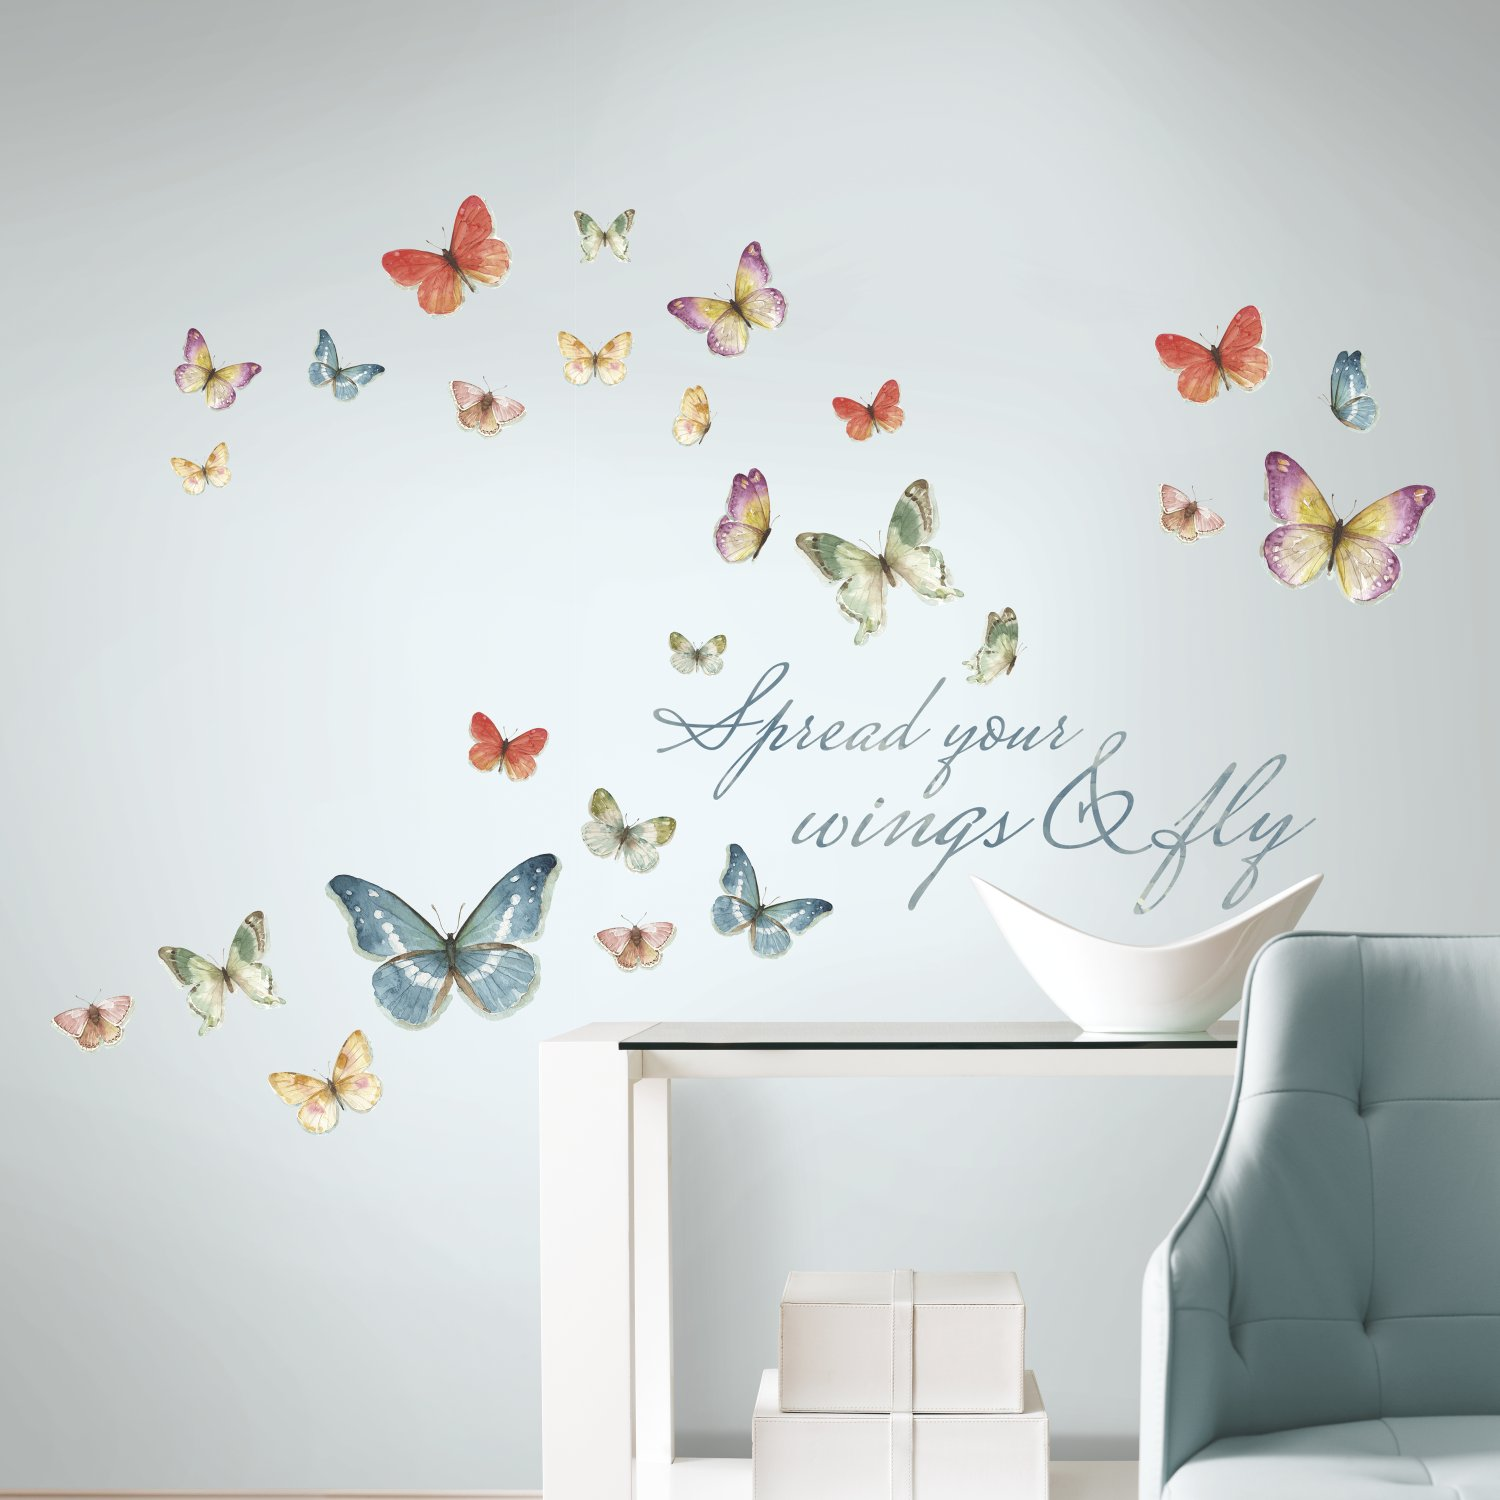 RoomMates Lisa Audit Butterfly Quote Peel And Stick Wall Decals by RoomMates